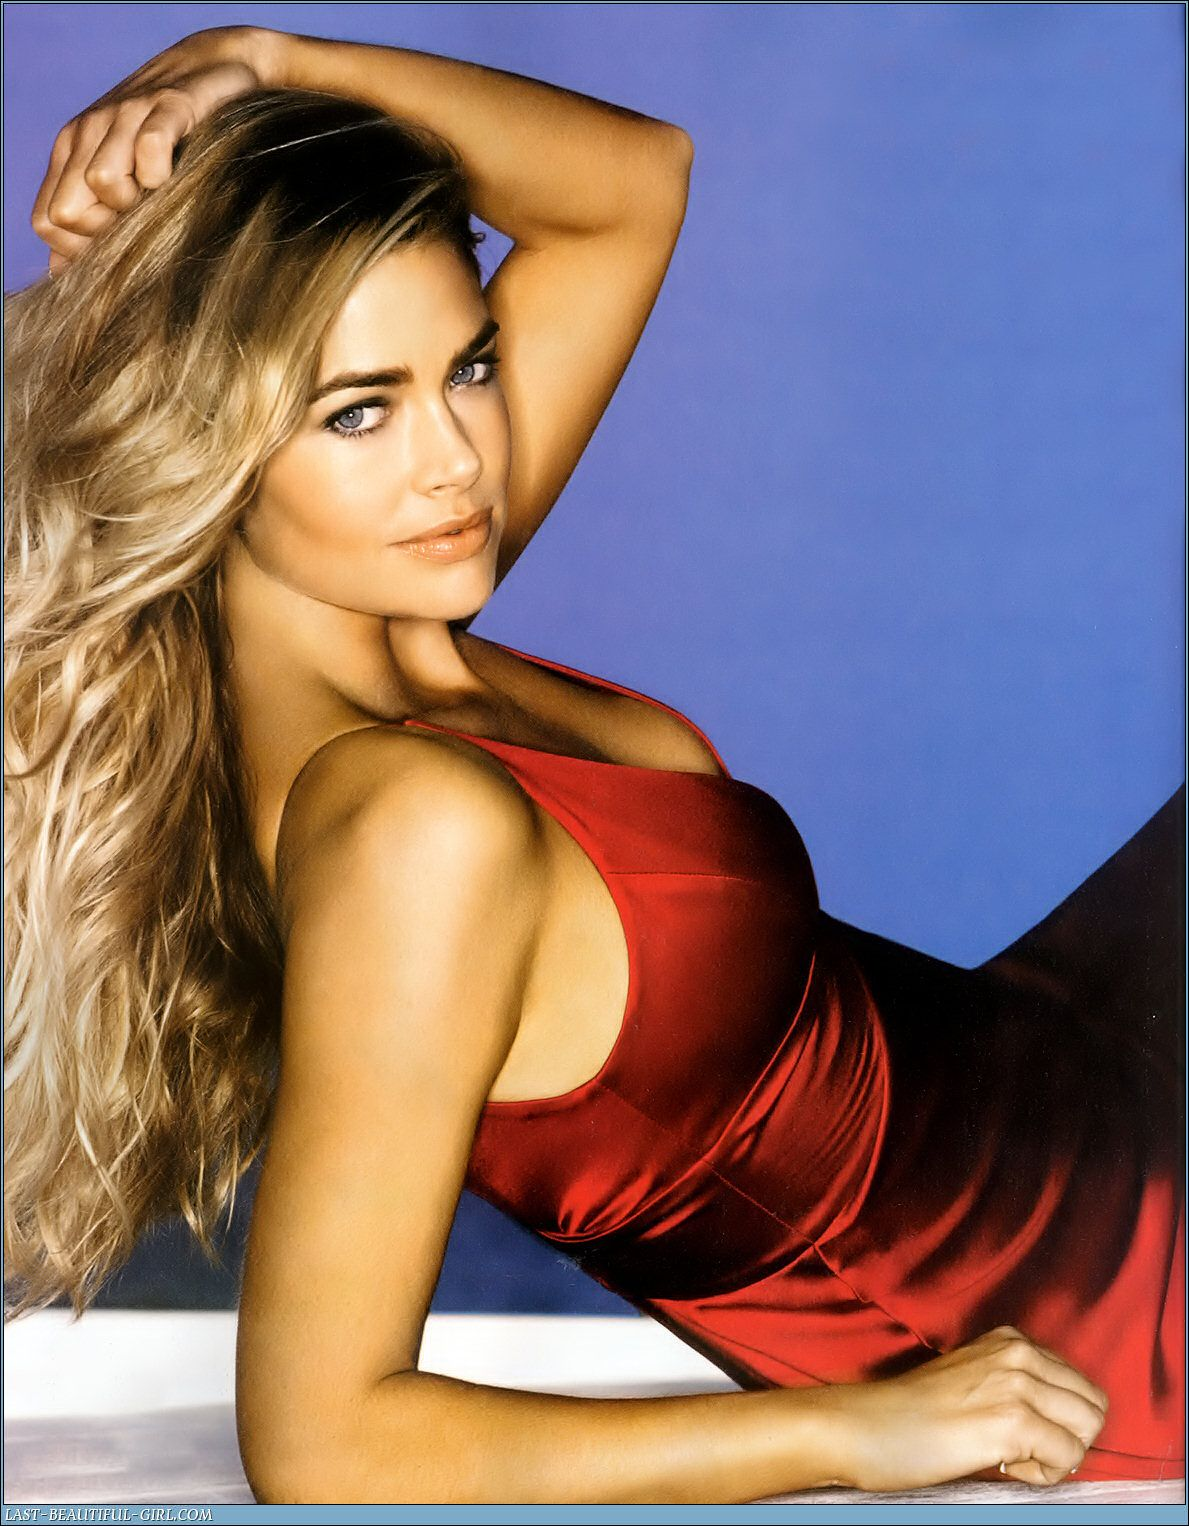 denise richards hot photo